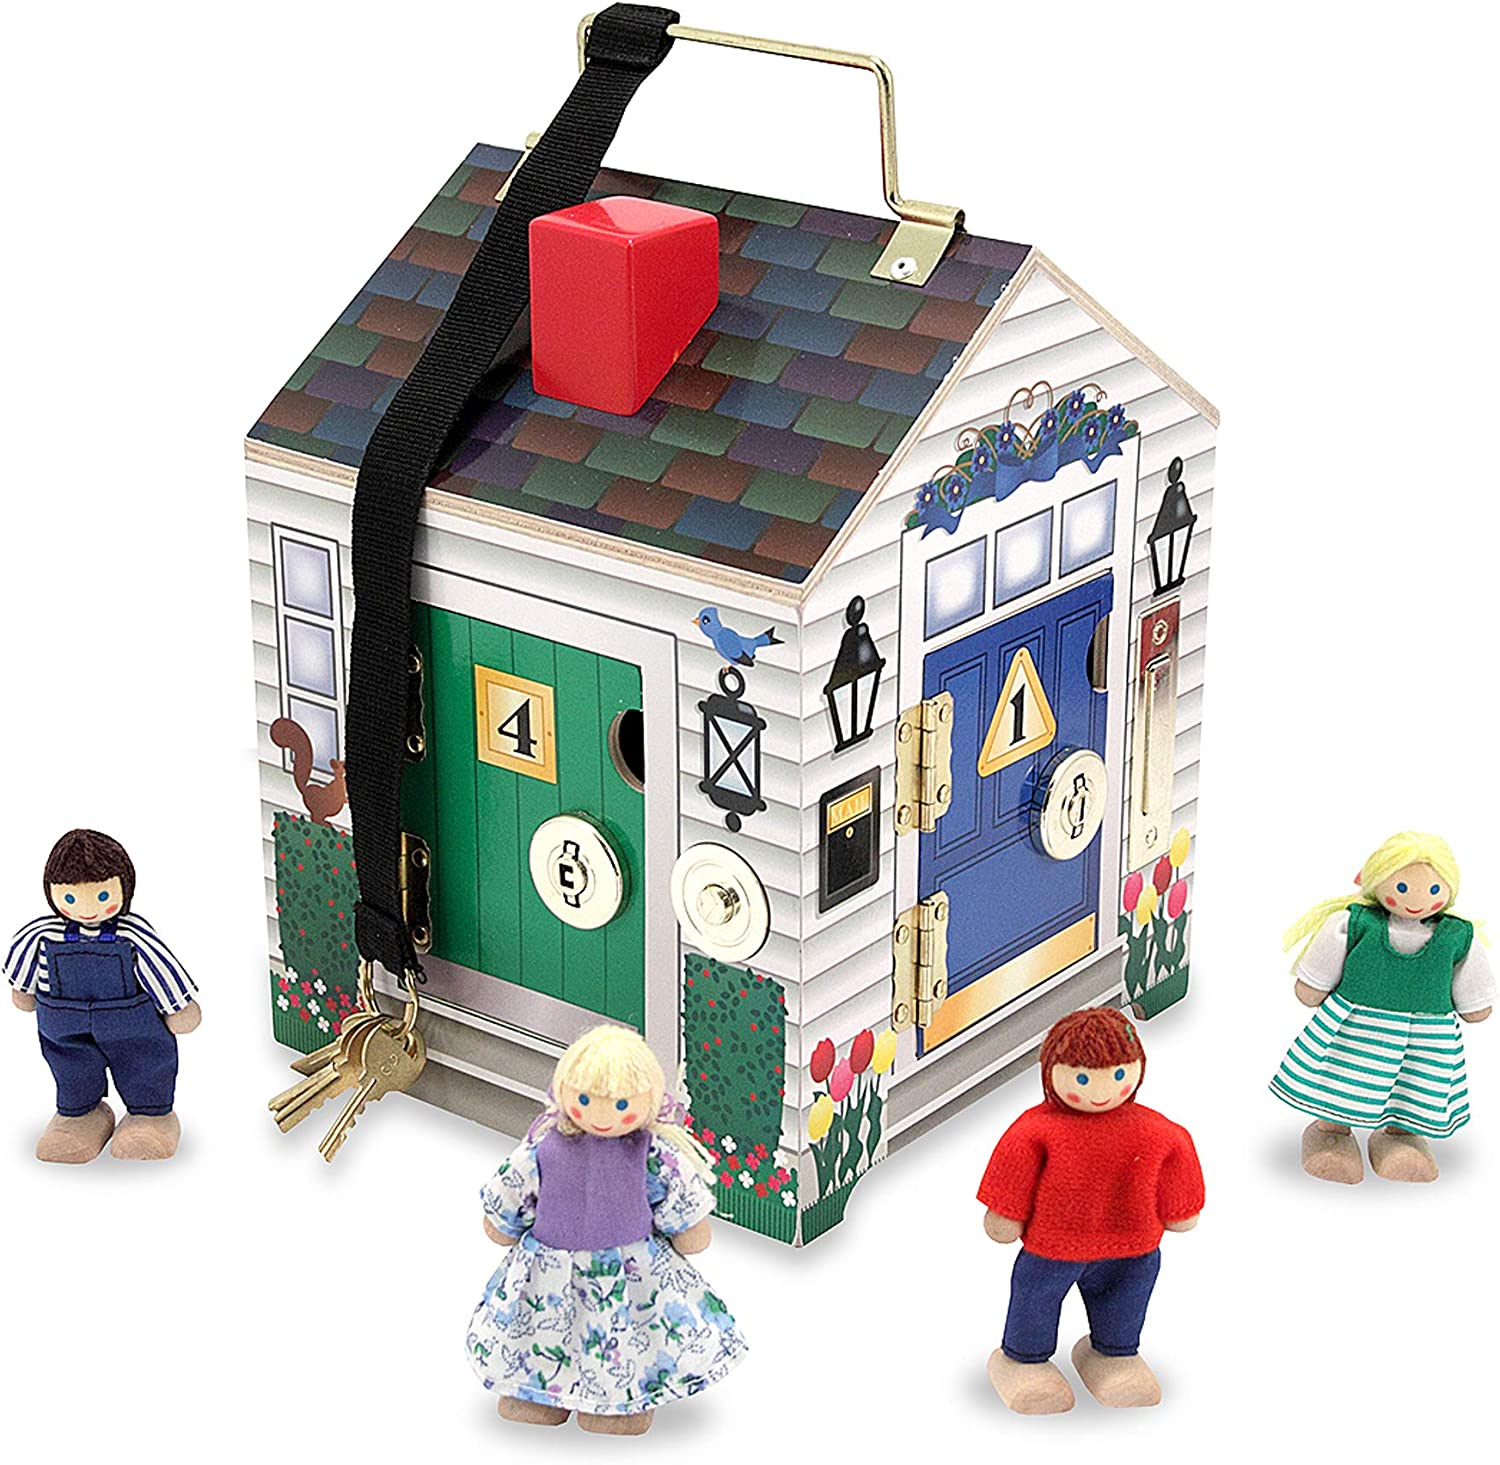 """B00021HB9U Melissa & Doug Take-Along Wooden Doorbell Dollhouse (Doorbell Sounds, Keys, 4 Poseable Wooden Dolls, 9"""" H x 6.8"""" W x 6.8"""" L, Great Gift for Girls and Boys - Best for 3, 4, and 5 Year Olds) 81iA2hCVb1L"""